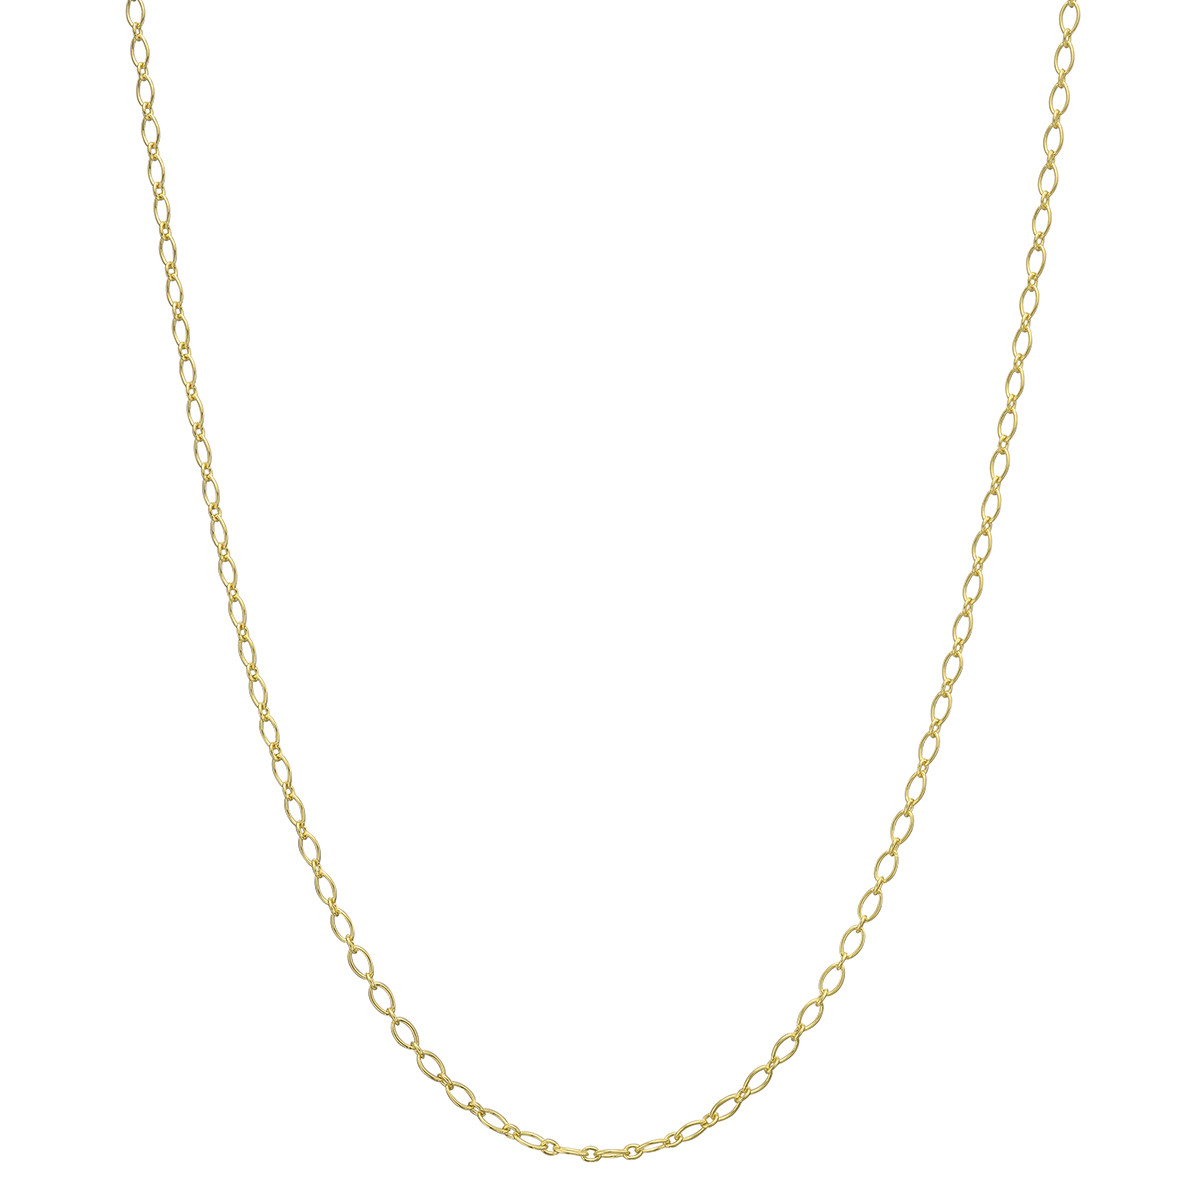 "14k Yellow Gold Baroque Link Chain Necklace (18"")"